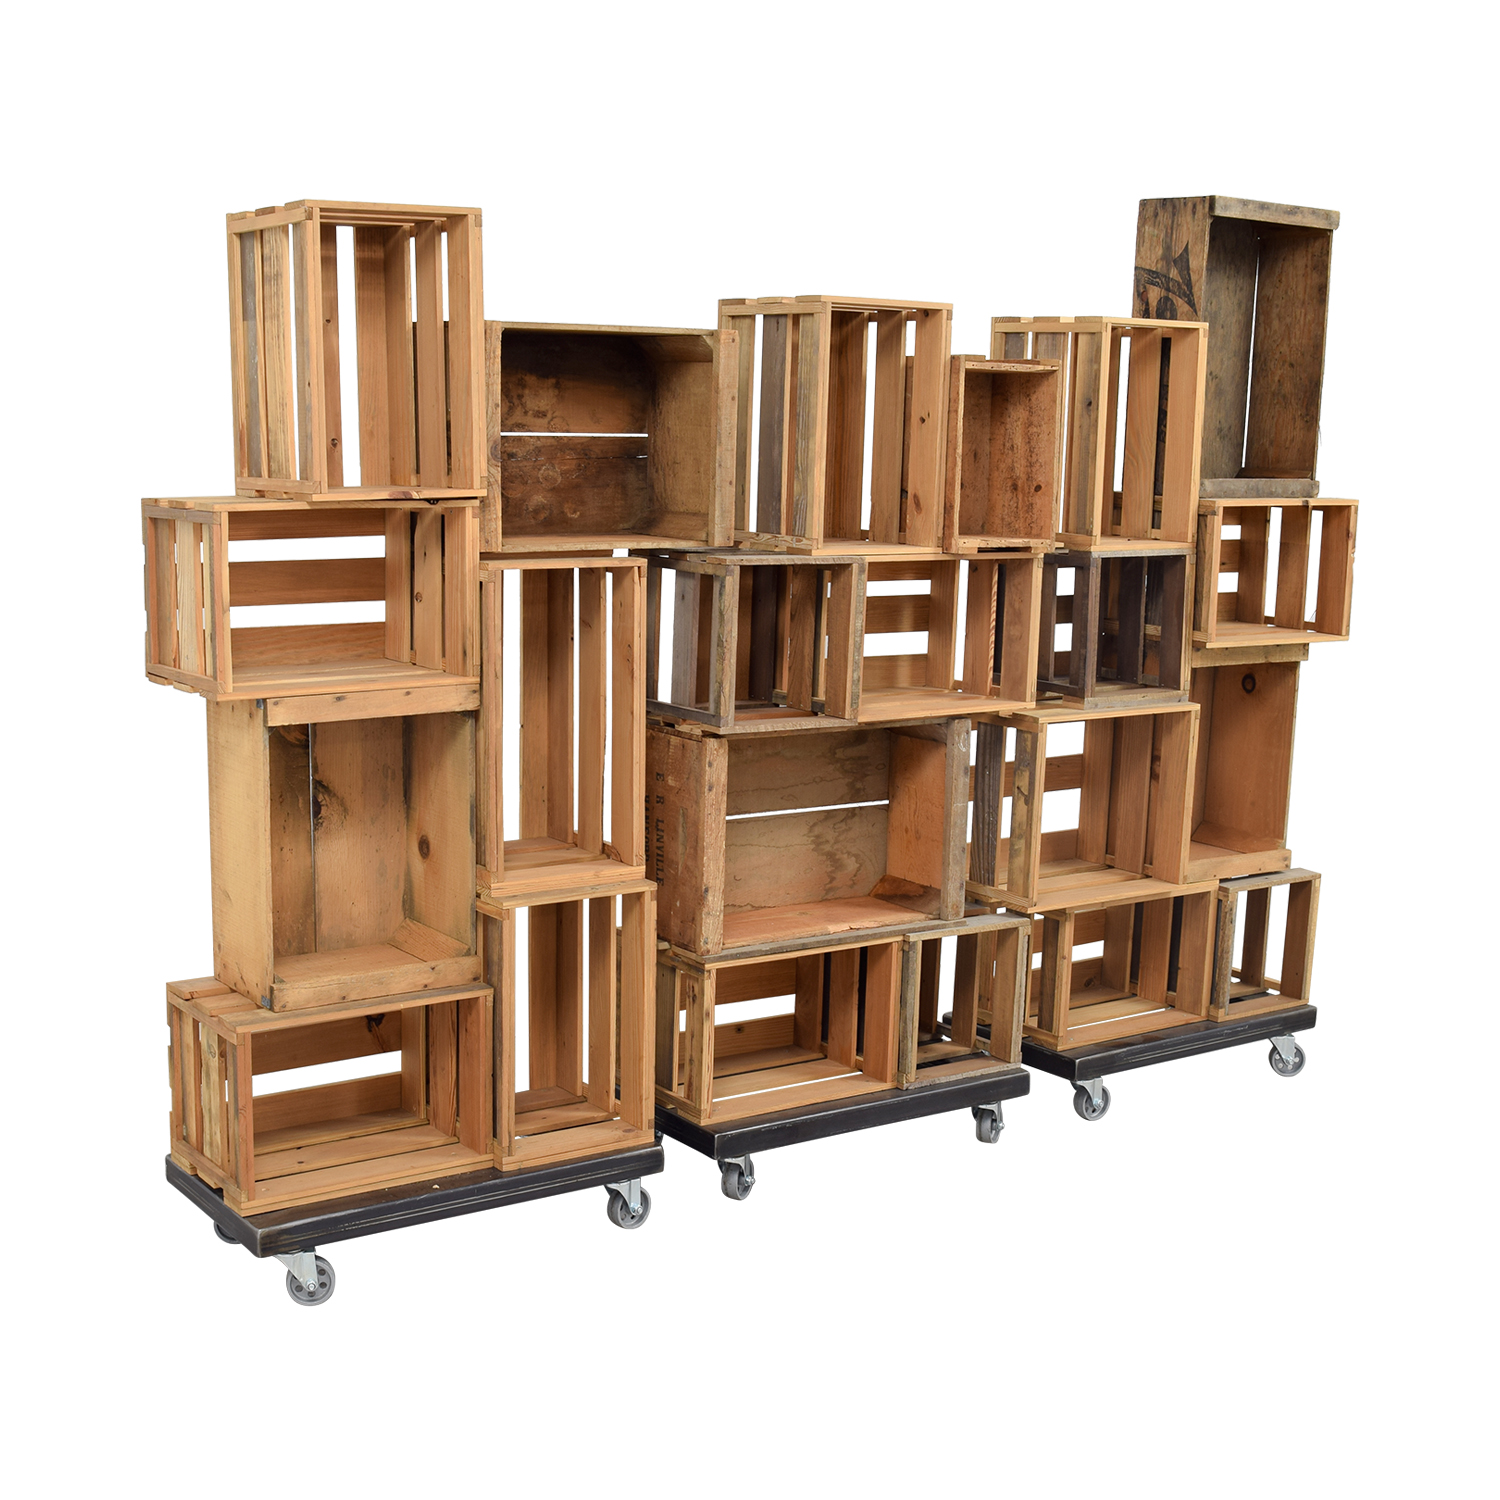 buy Colin Burton Designs Custom Apple Crate Bookshelves on Steel Base Casters Colin Burton Designs Storage